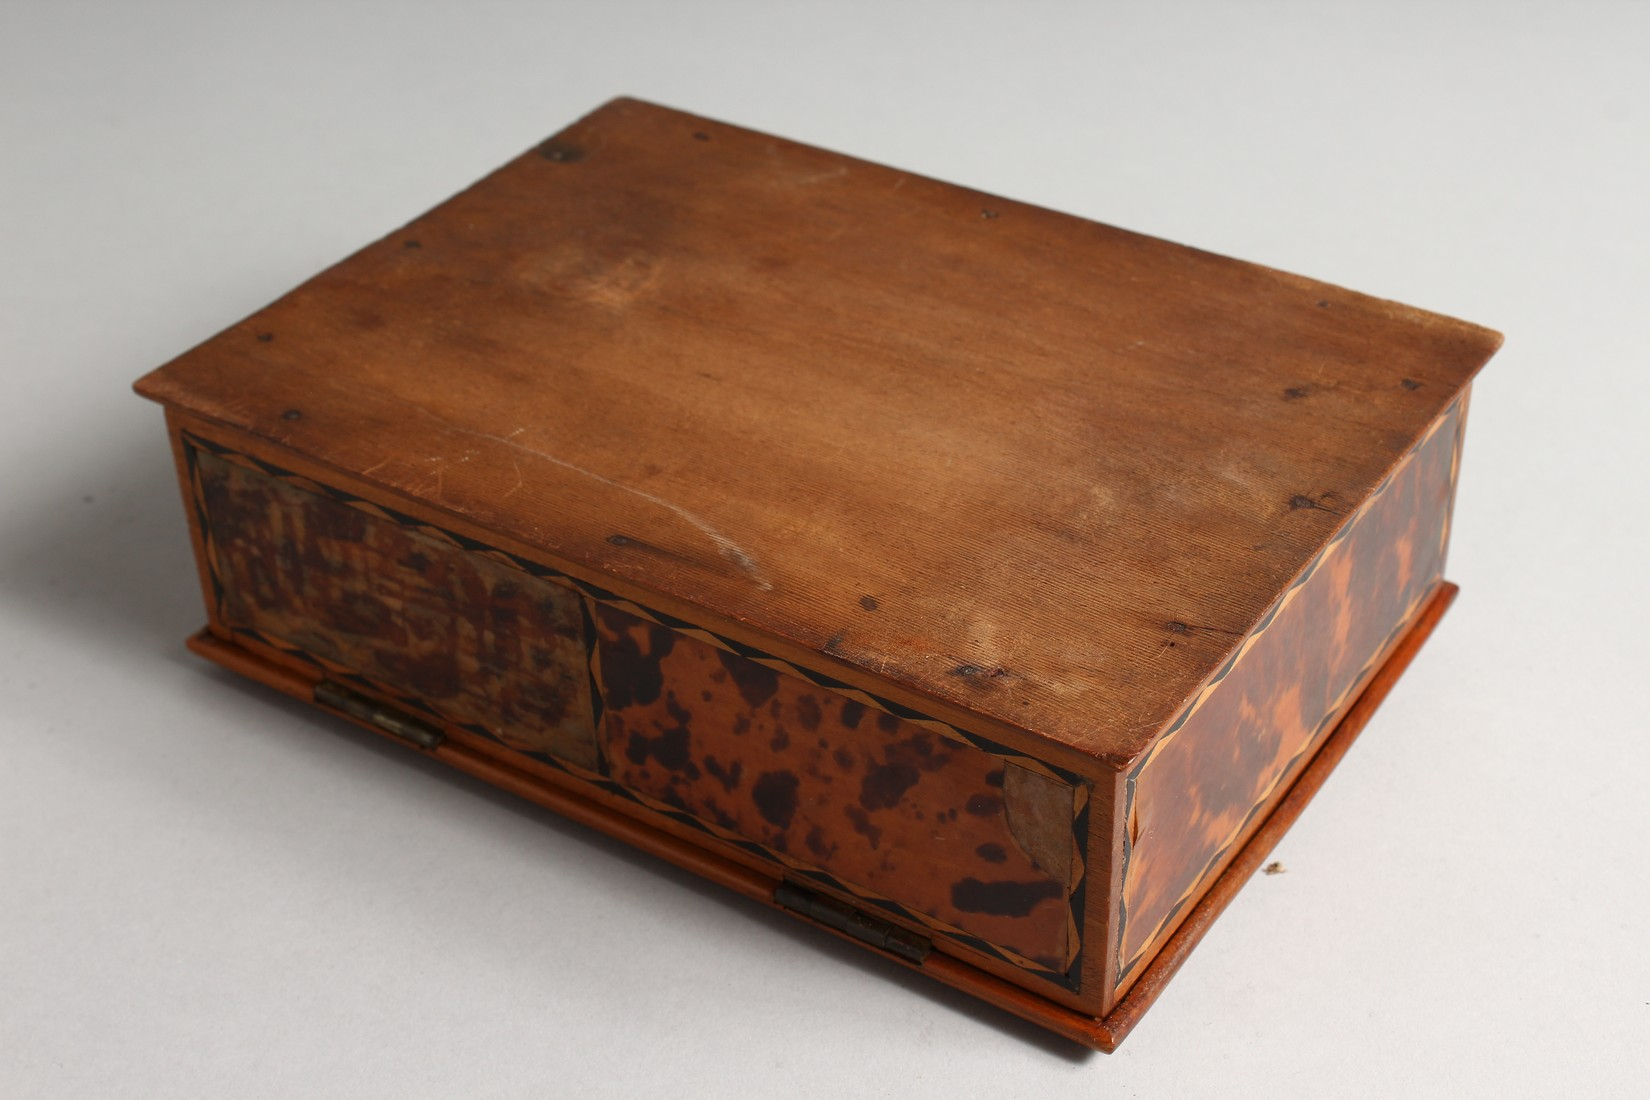 A TORTOISESHELL RECTANGULAR BOX AND COVER 8.5ins long. - Image 3 of 4